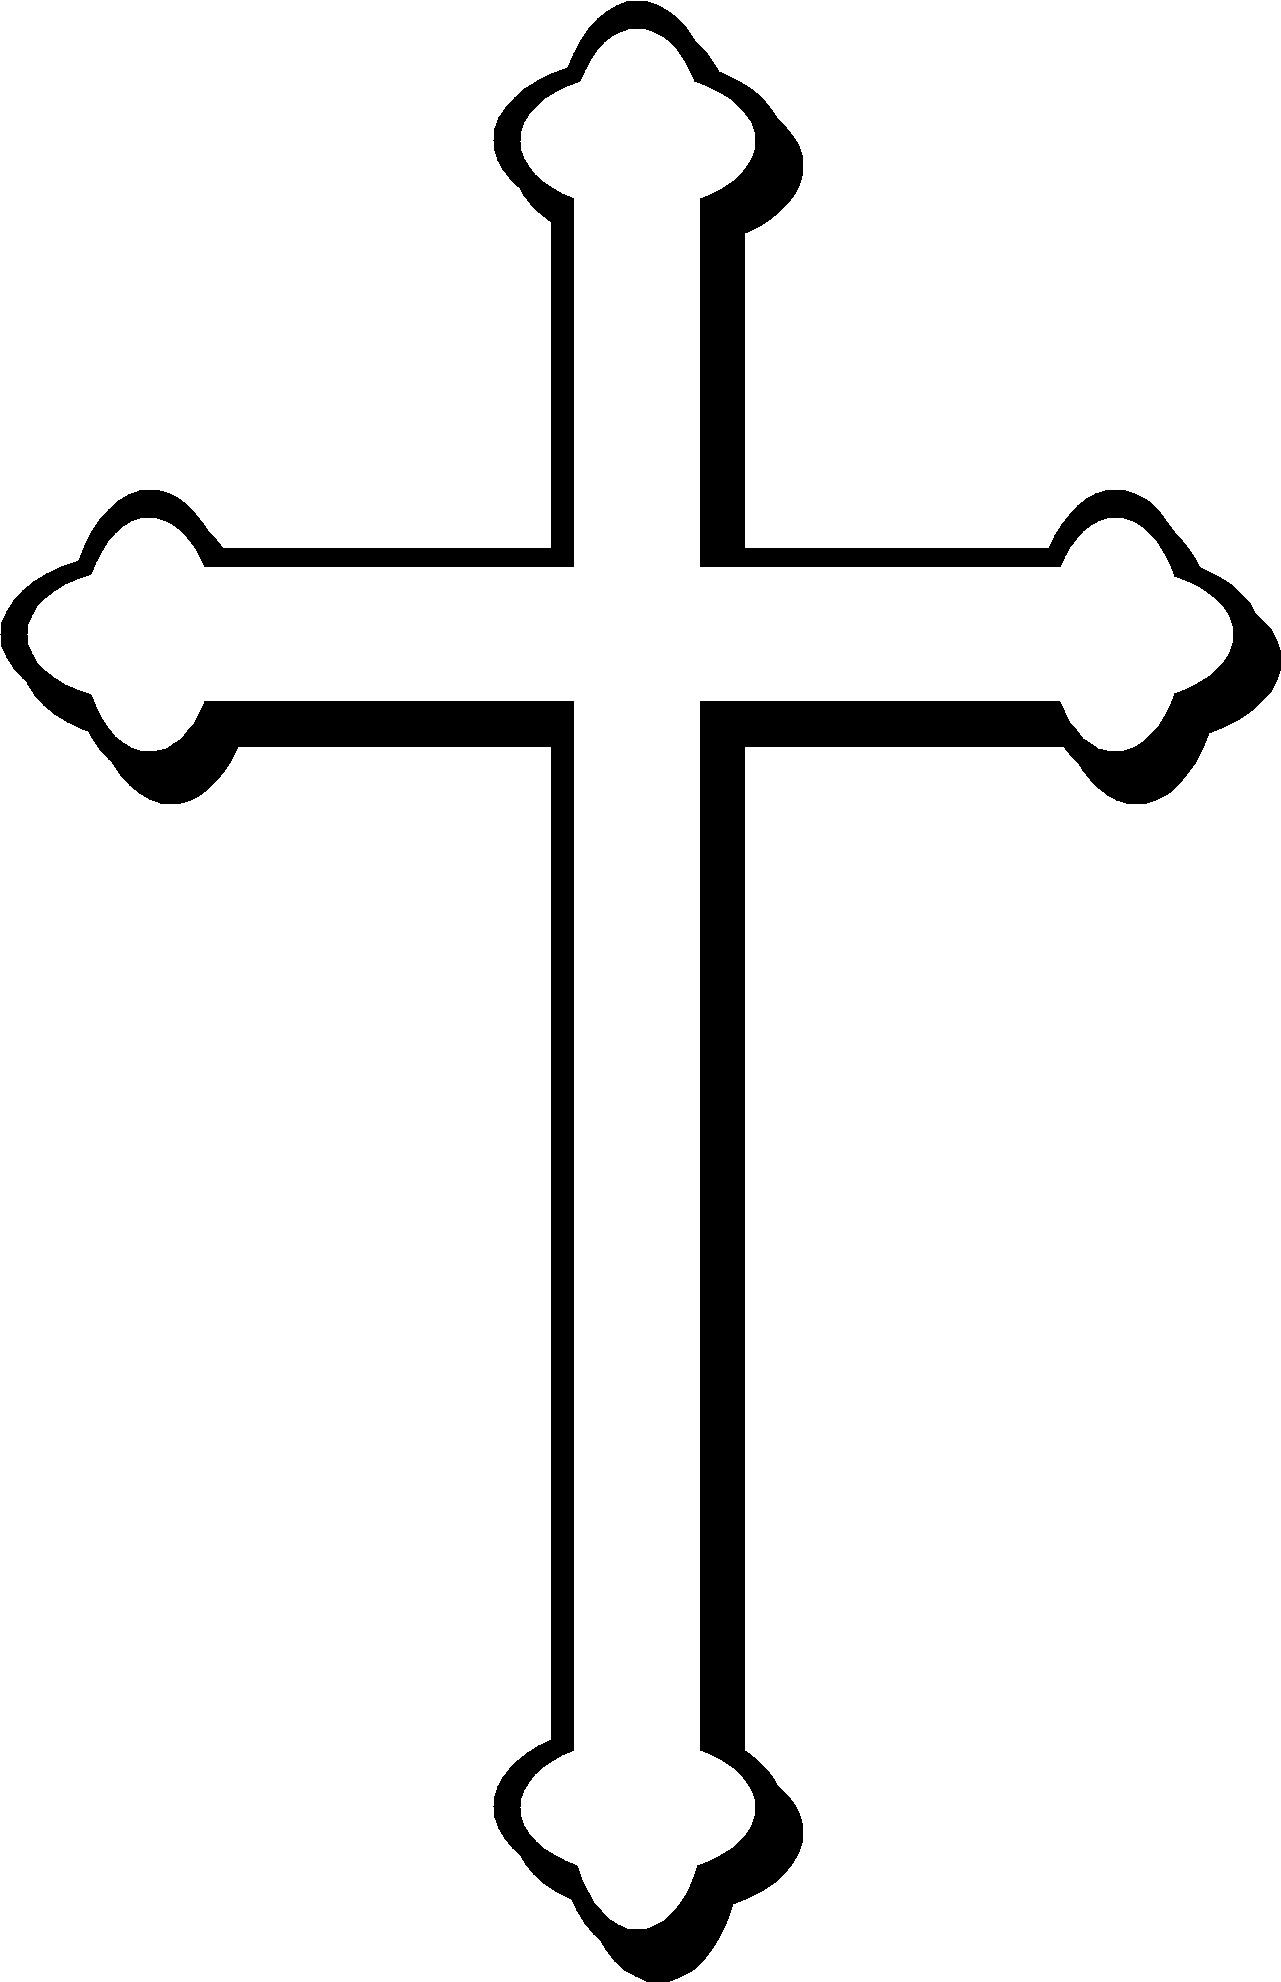 clipart of jesus on the cross clipart best crosses pinterest rh pinterest com jesus christ on the cross clipart jesus on the cross clipart images